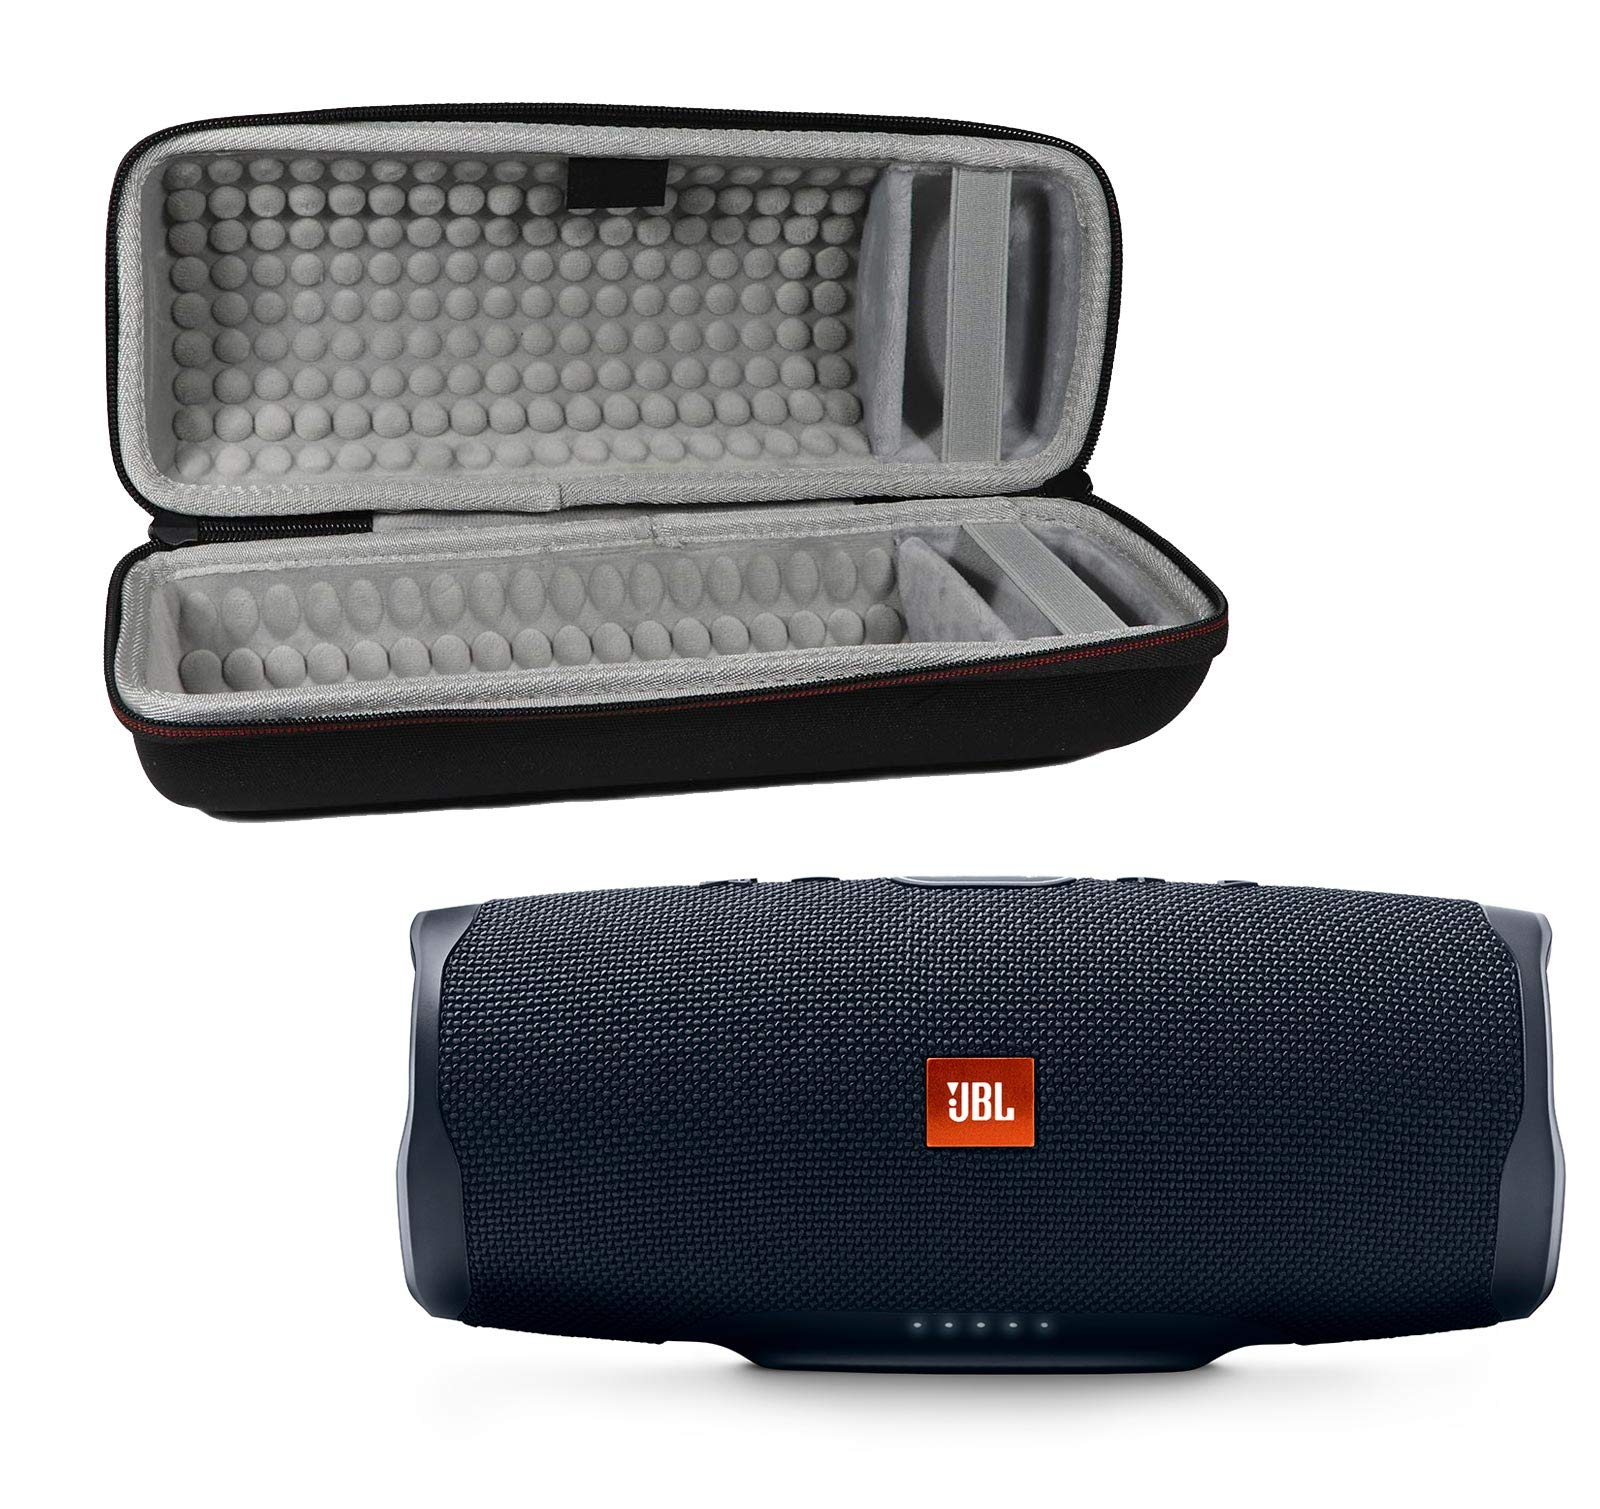 JBL Charge 4 Waterproof Wireless Bluetooth Speaker Bundle with Portable Hard Case - Black by JBL (Image #1)